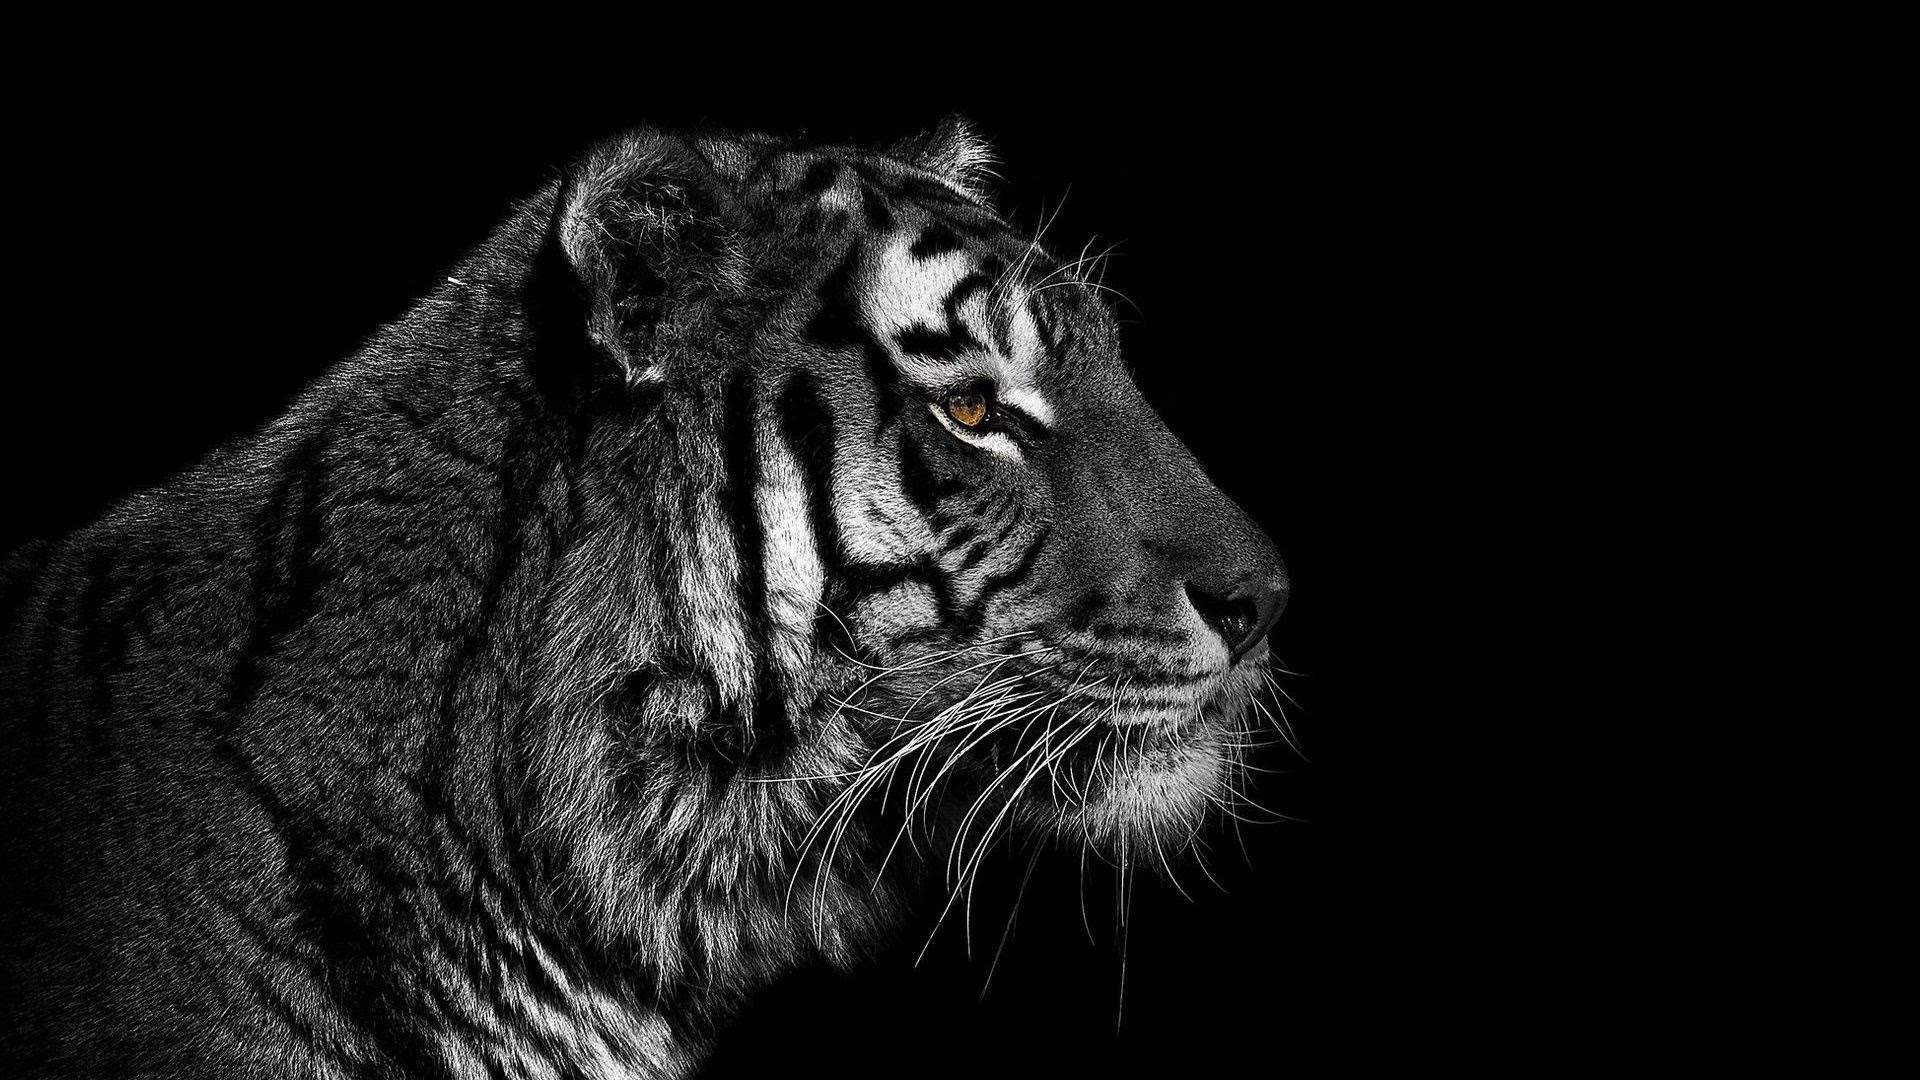 Beautiful Black Tiger Images Hd Wallpaper Pictures